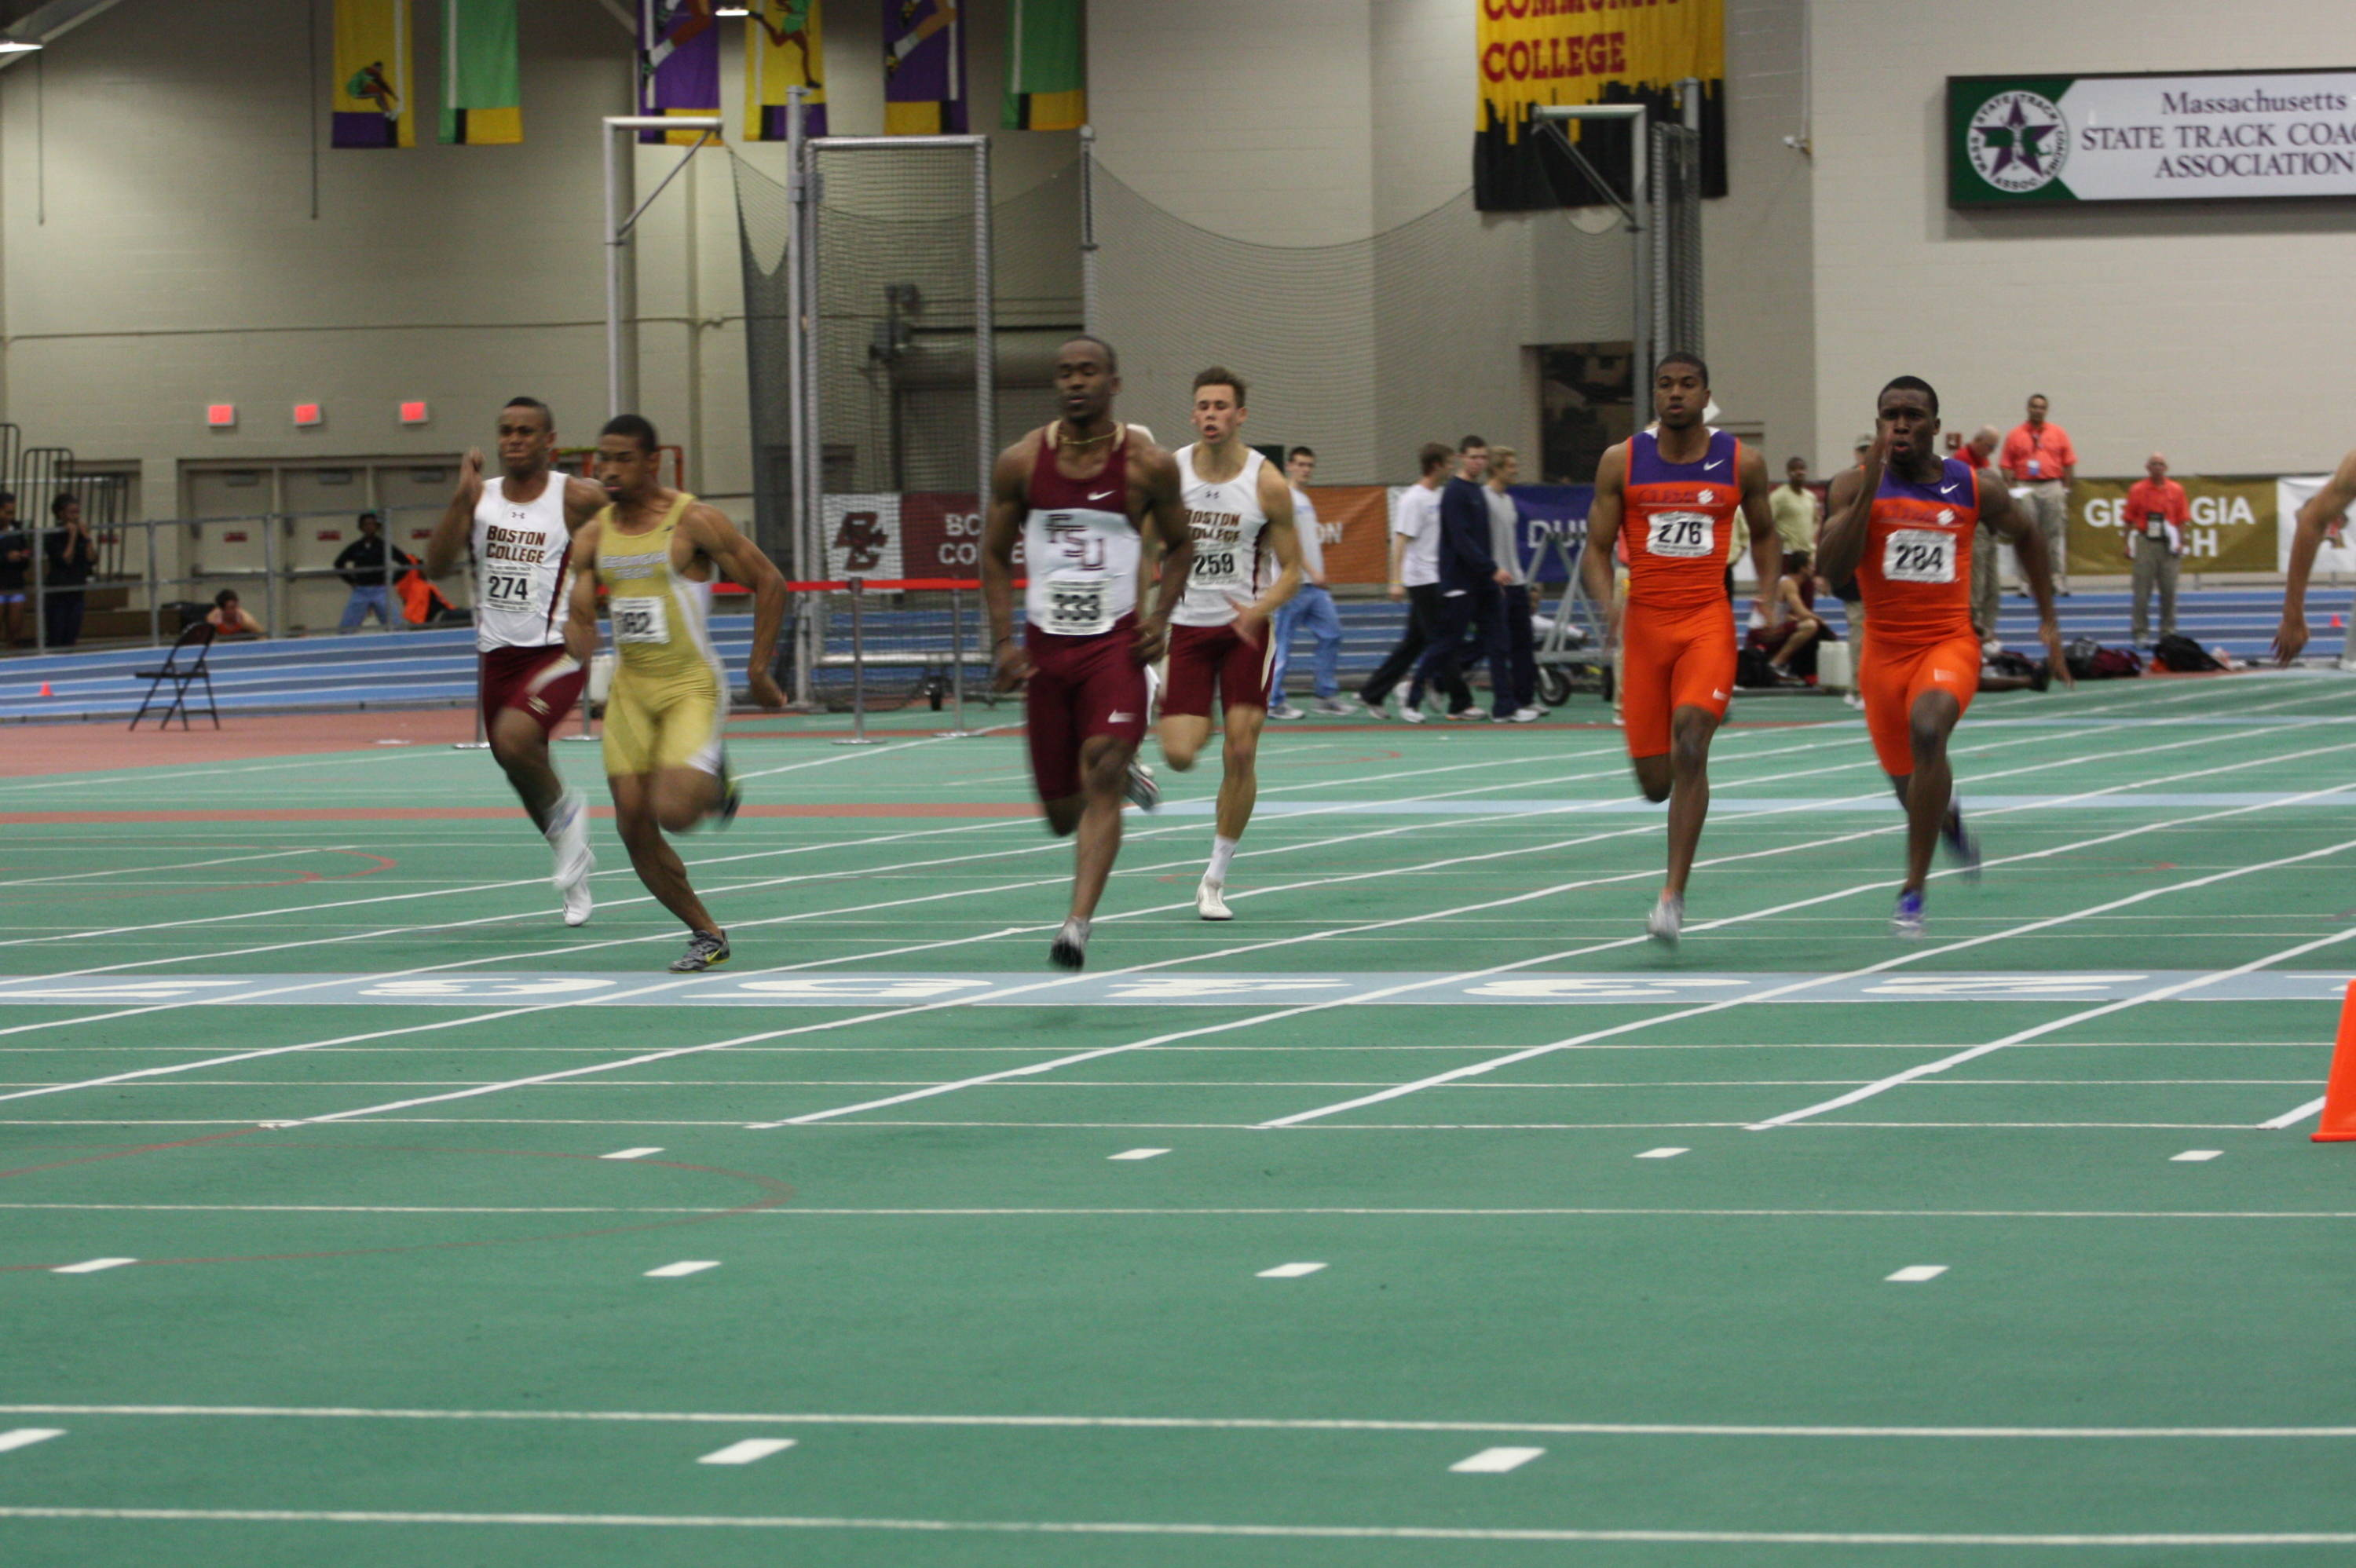 Kemar Hyman (center) cruises to the top qualifying time - 6.60 - in the 60-meter dash.